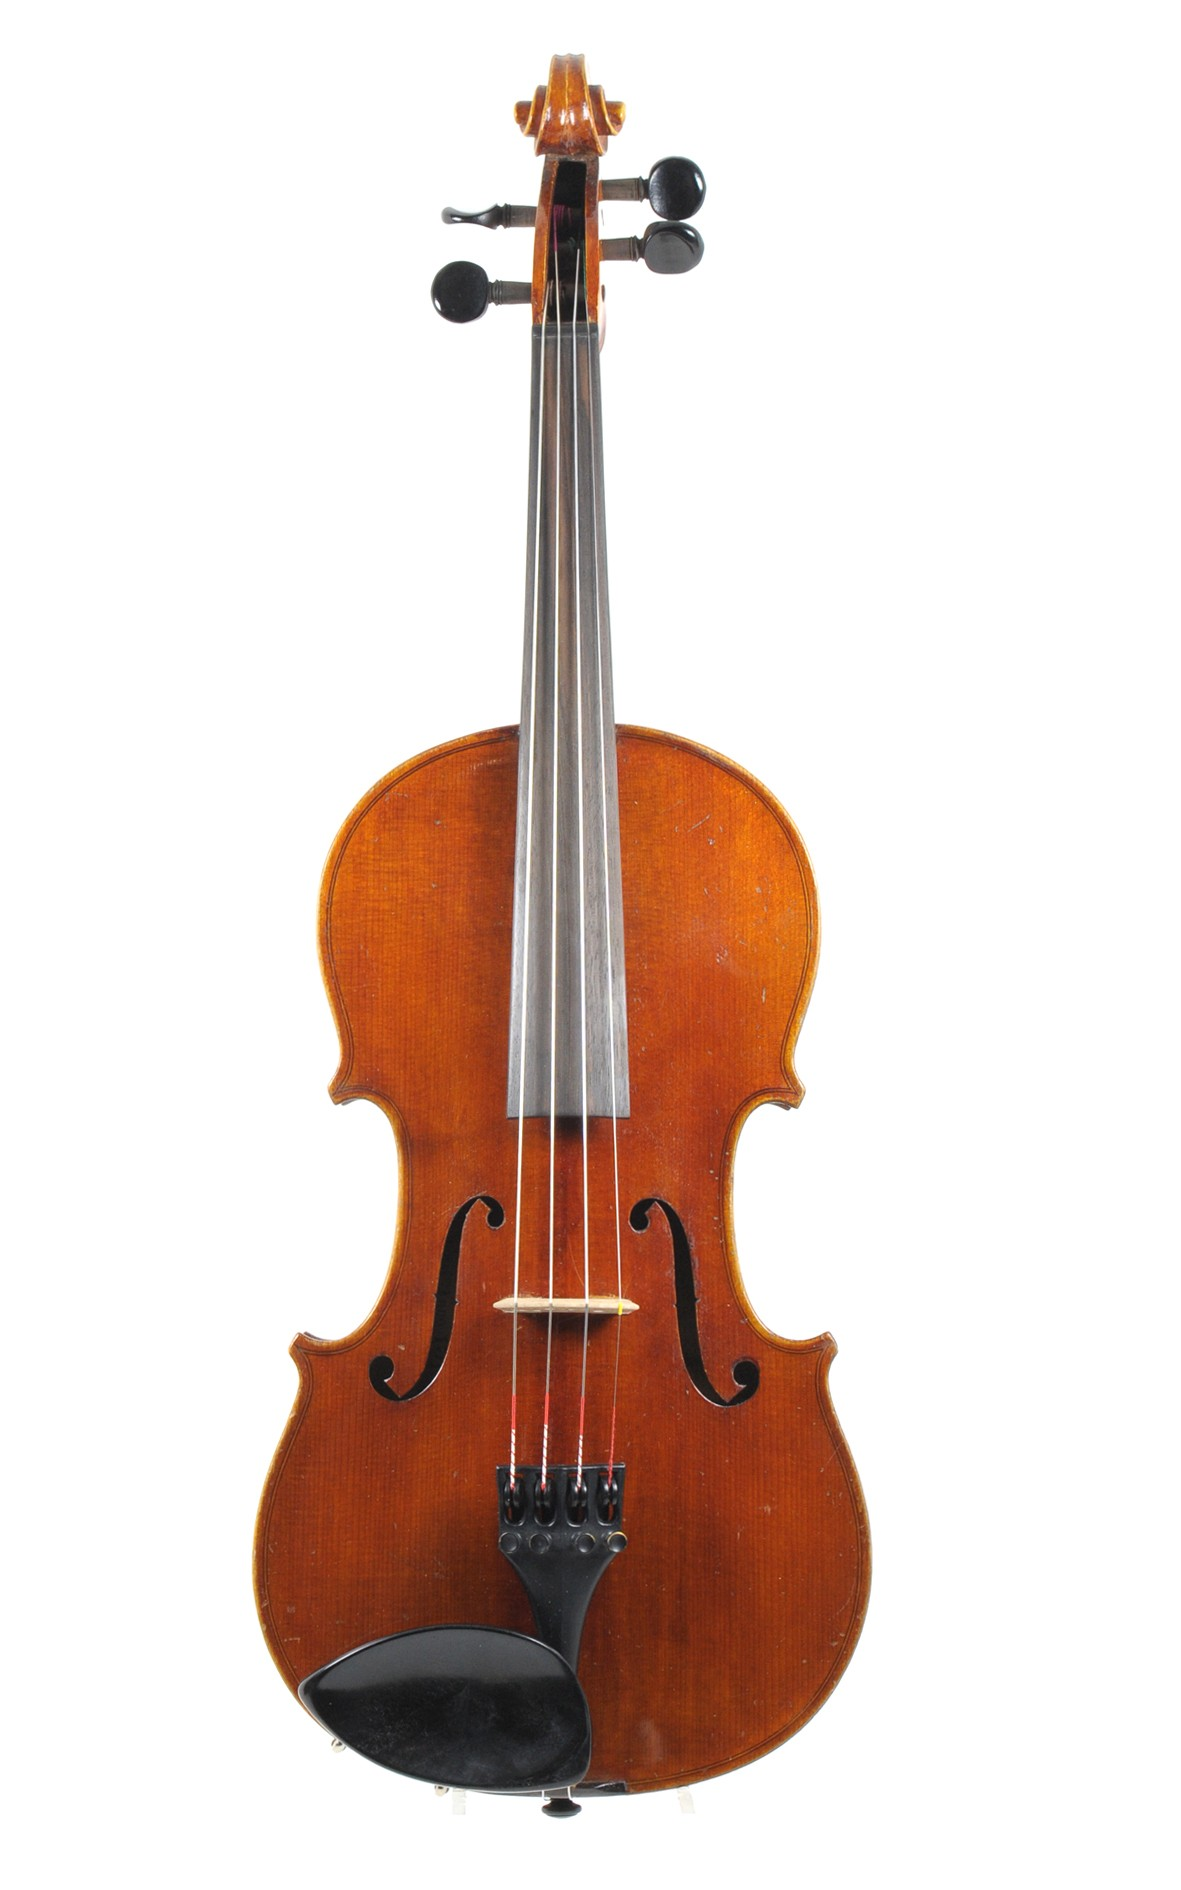 German violin of the 1940s, for orchestral use - top